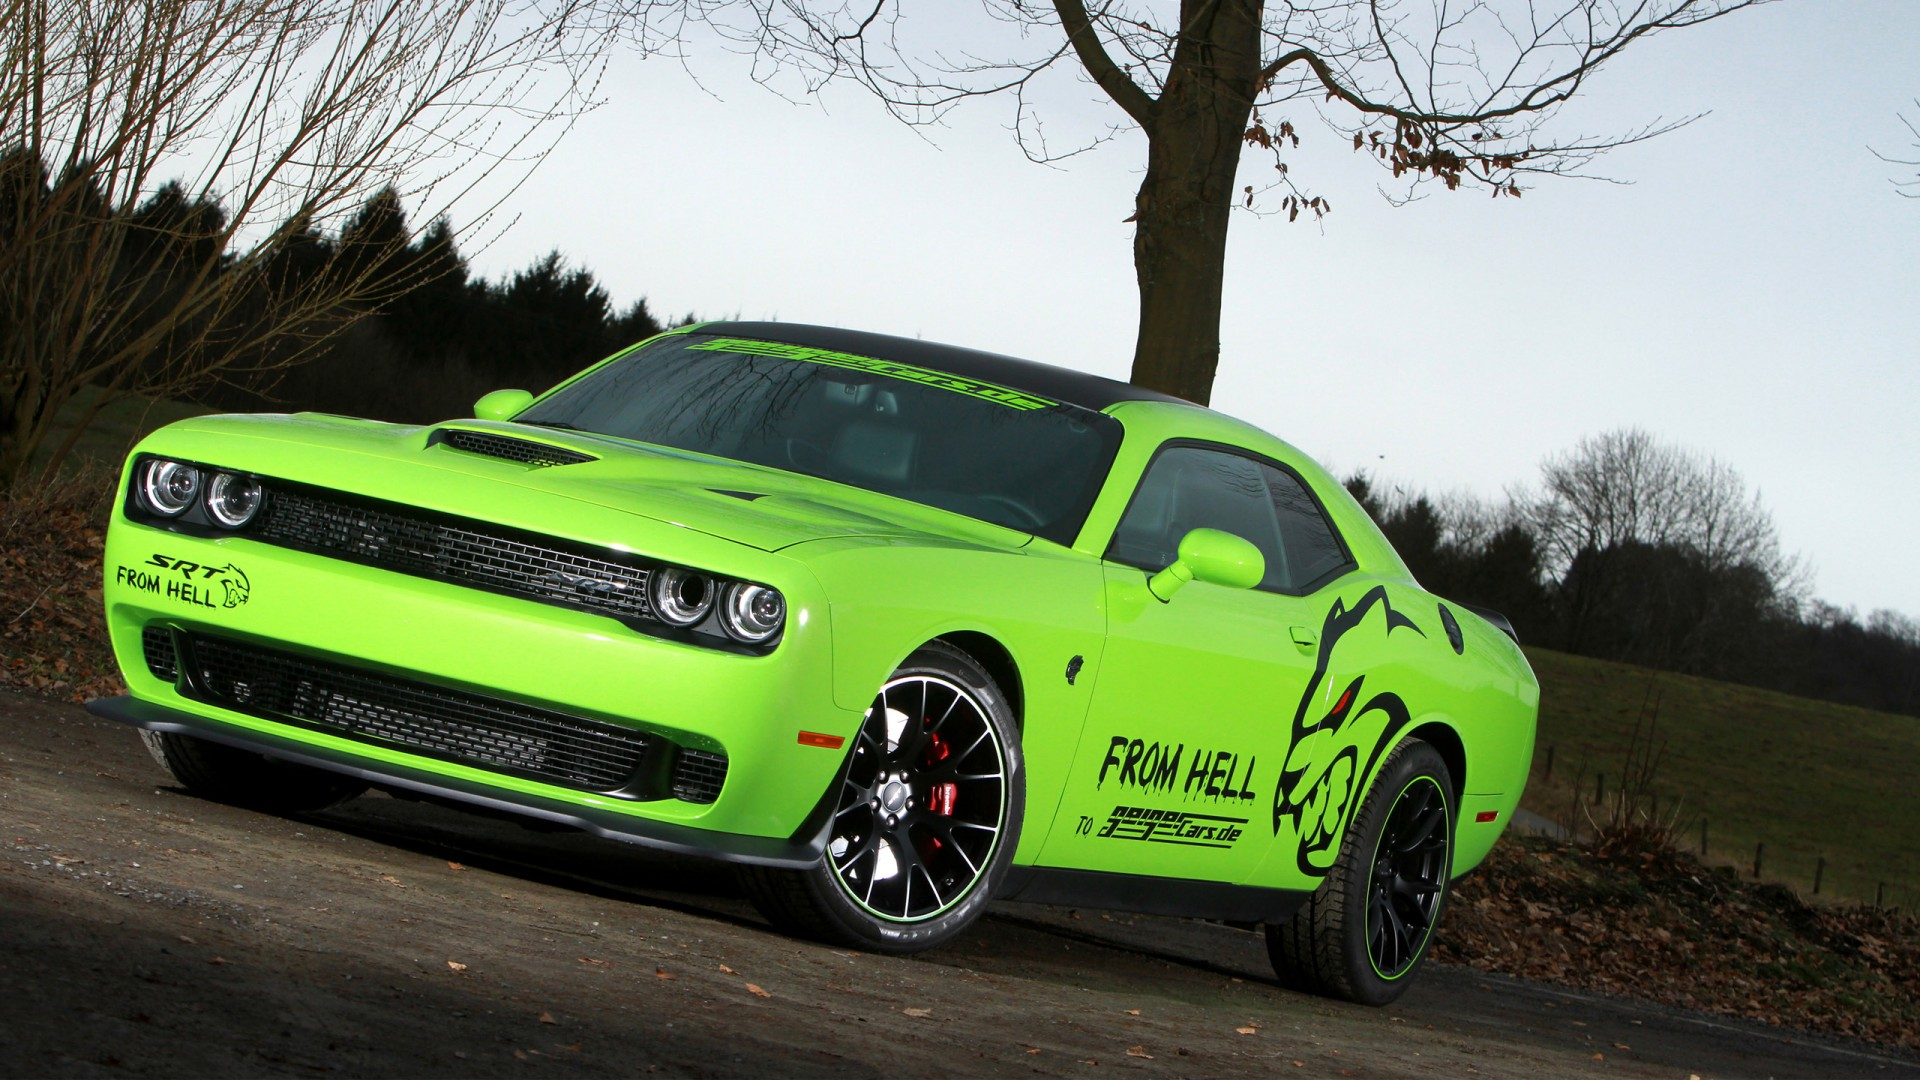 Widescreen Car Wallpapers Hd 2015 Geigercars Dodge Challenger Srt Hellcat Wallpaper